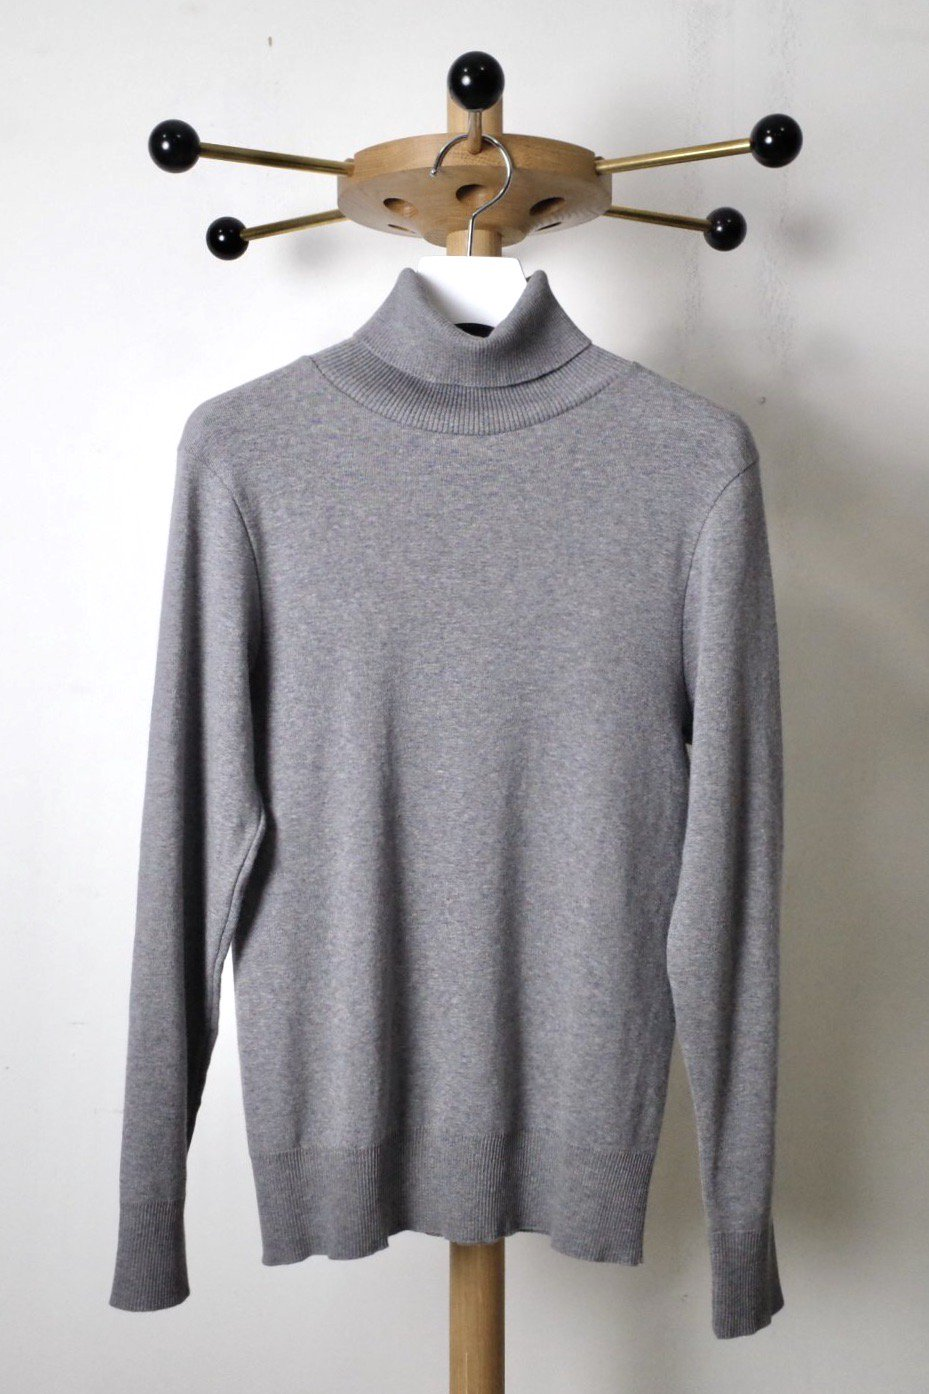 <img class='new_mark_img1' src='//img.shop-pro.jp/img/new/icons5.gif' style='border:none;display:inline;margin:0px;padding:0px;width:auto;' />gicipi ジチピ-TURTLENECK TOPS-ANANAS-GRAY-